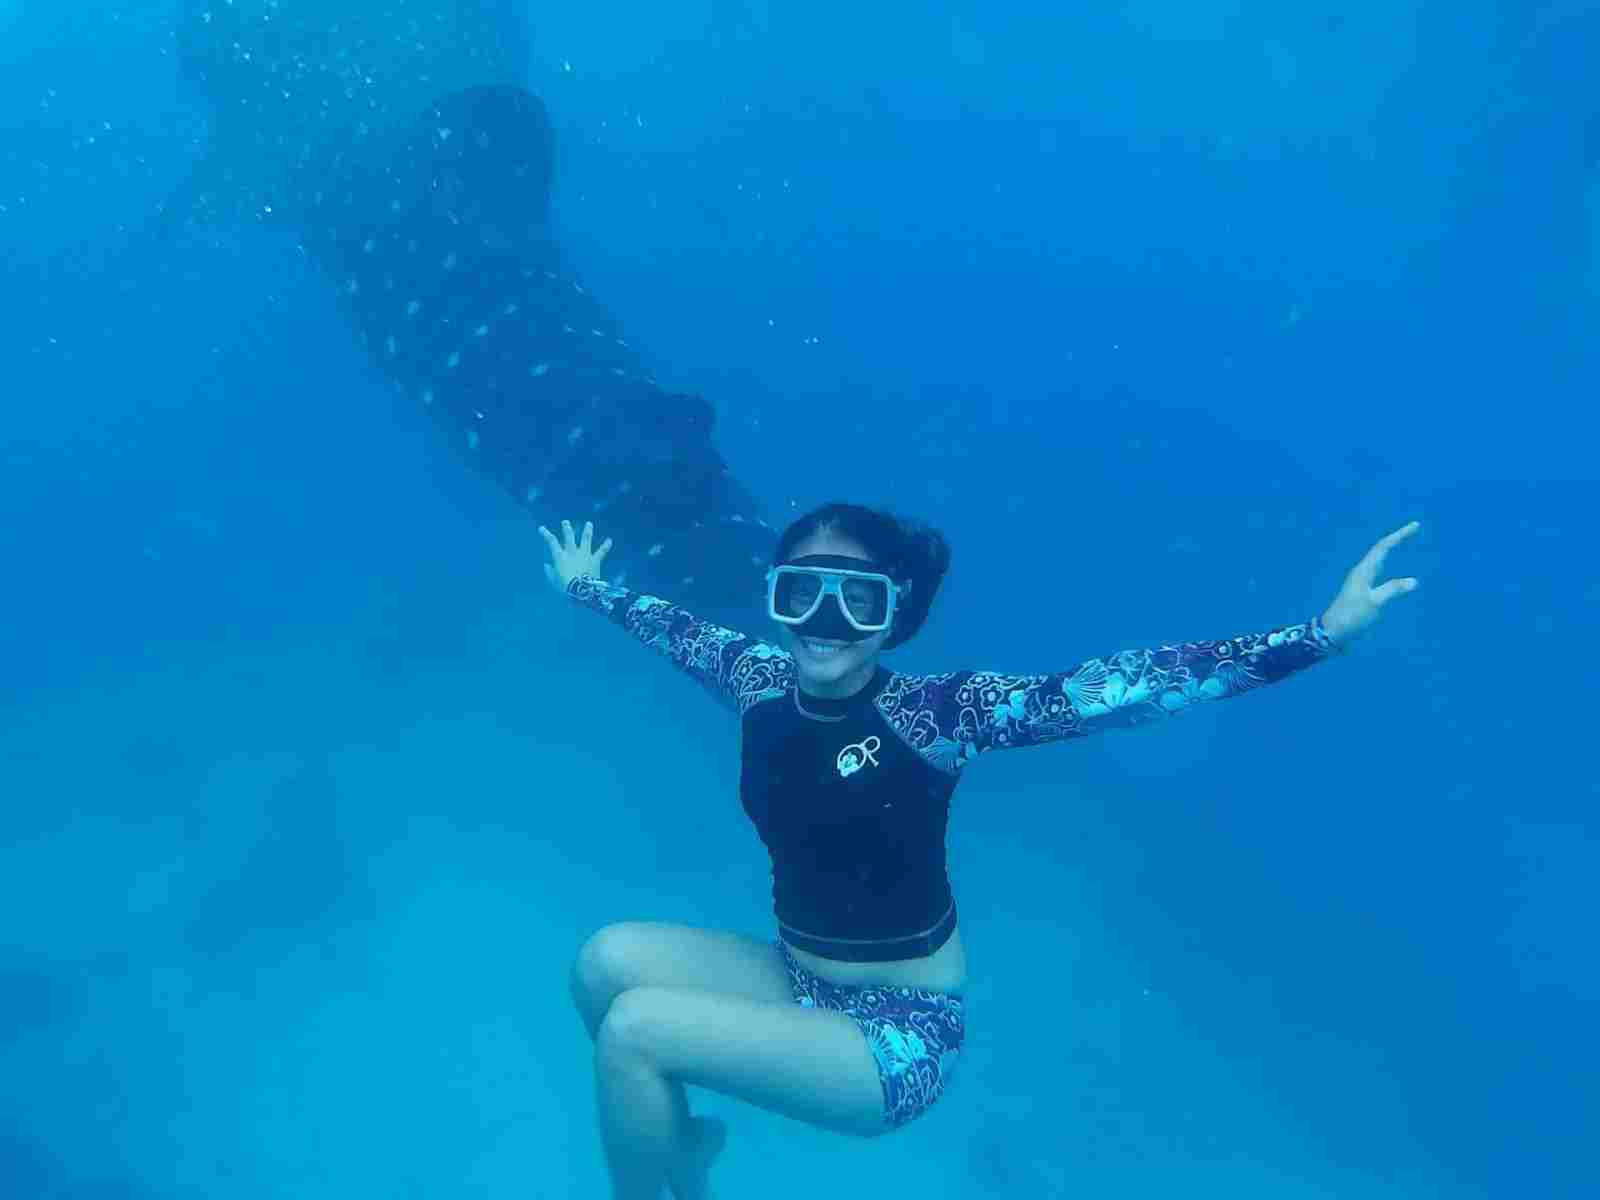 Best dive spots in Oslob Cebu Island Philippines 2018 and famous diving spots for shark,dolphin,whales,hammer head shark,riding a boat